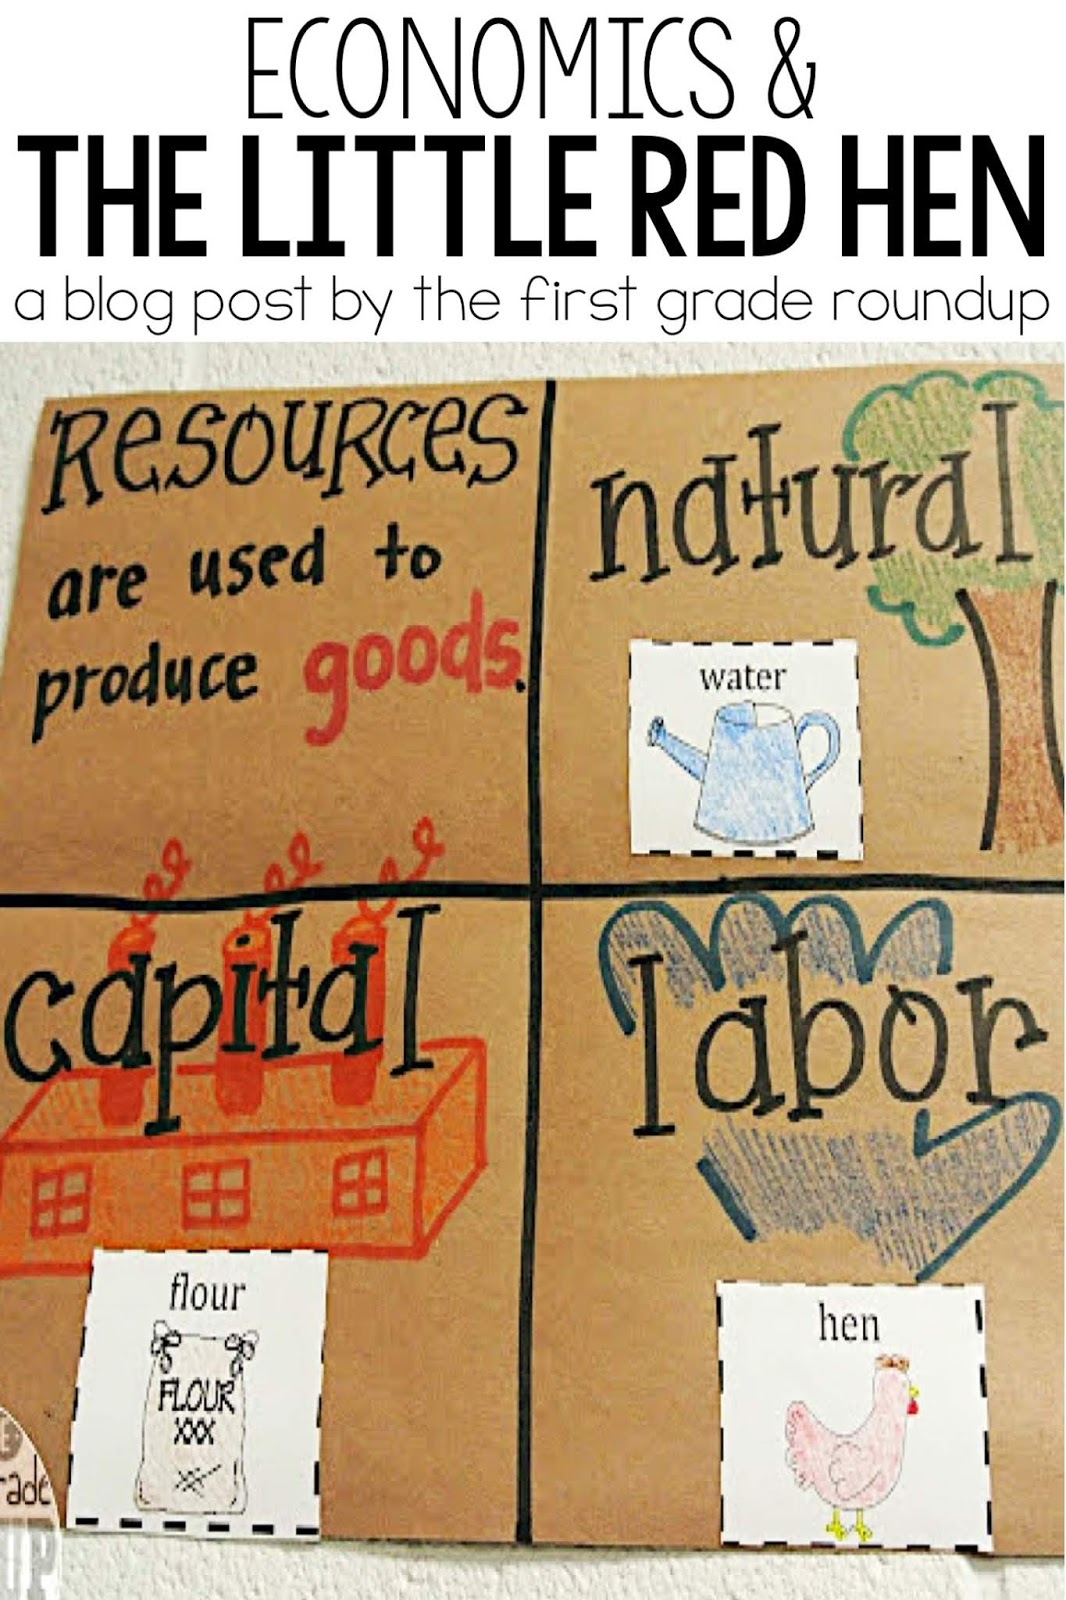 small resolution of The Little Red Hen \u0026 Economics - Firstgraderoundup